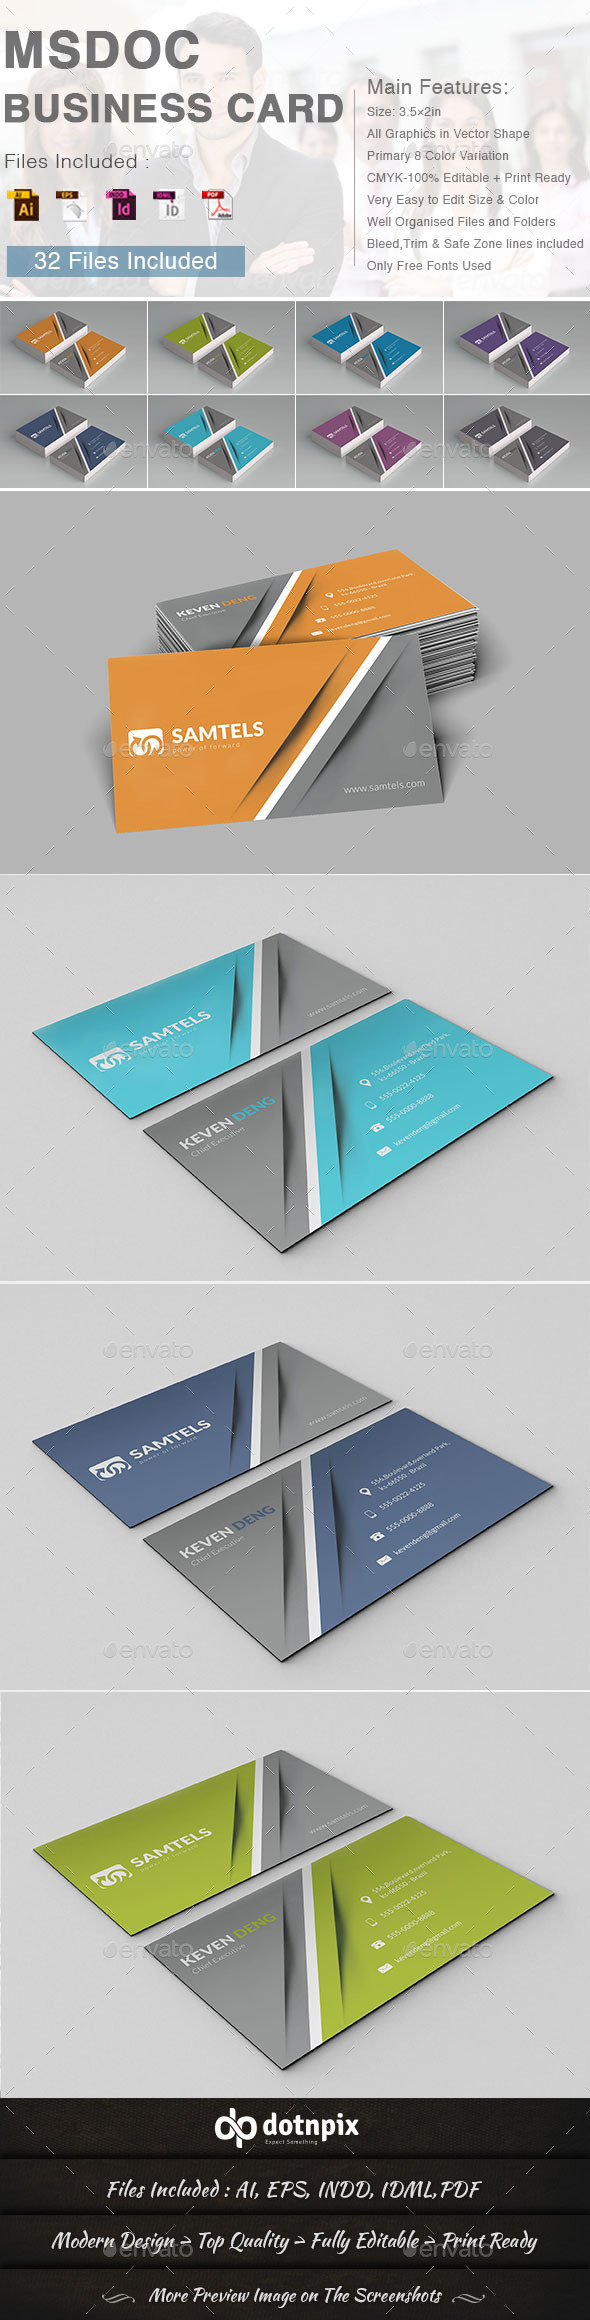 GraphicRiver Msdoc Business Card 9432073